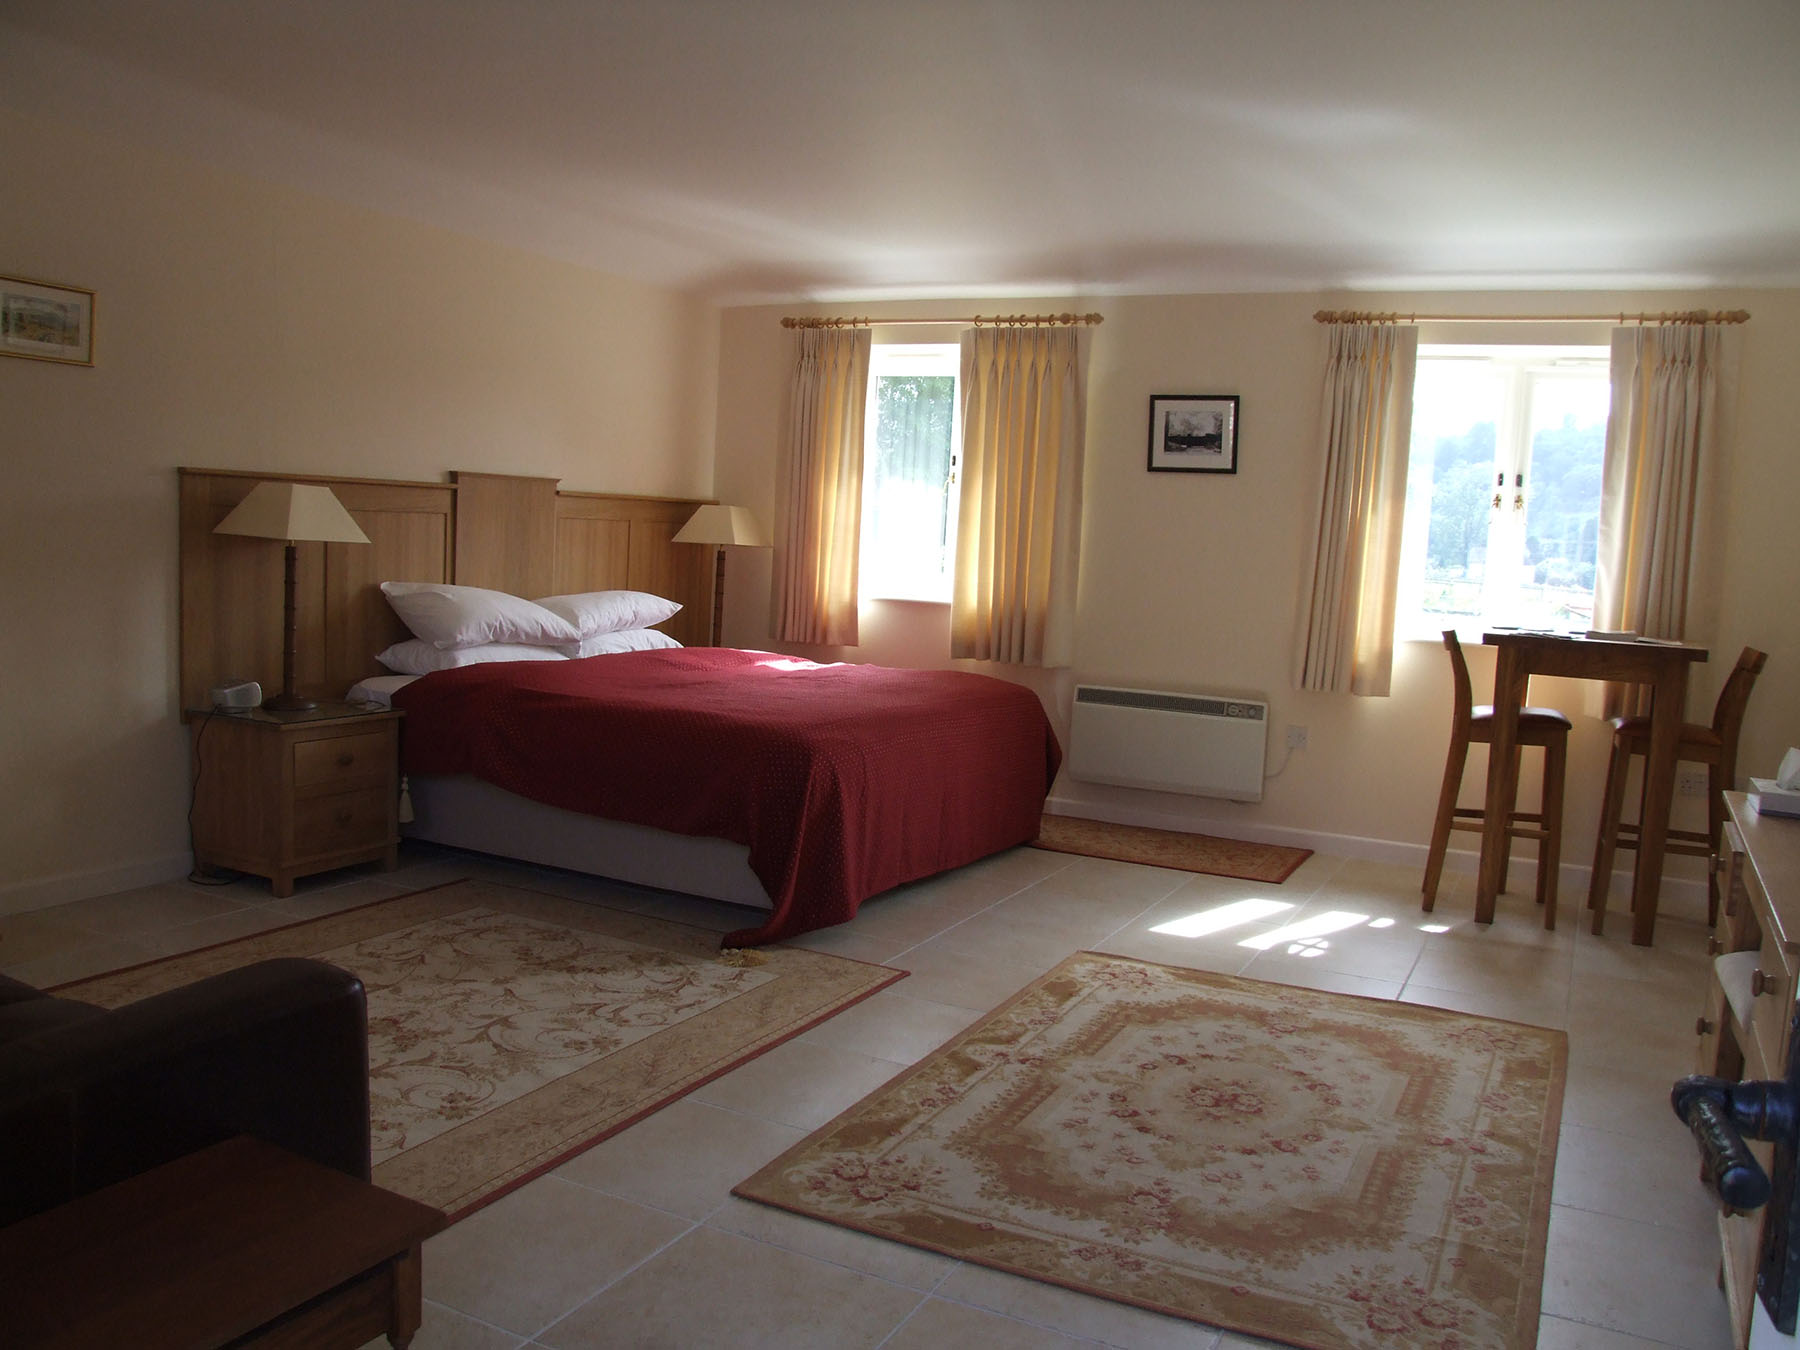 Contemporary style furnishings in the Annexe bedrooms at Chilgrove Farm bed & breakfast near Chichester